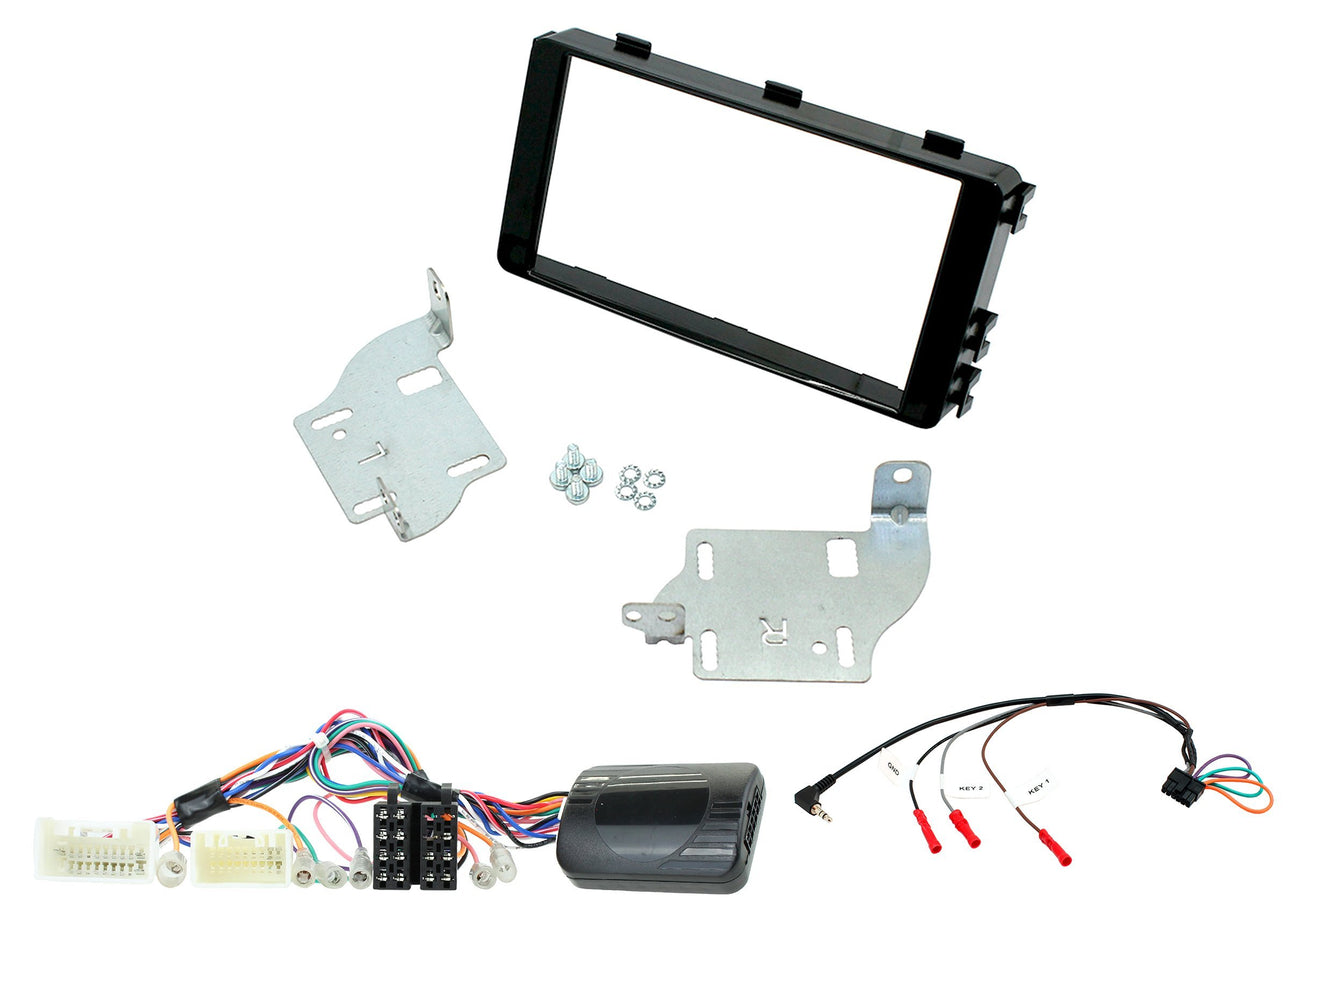 Aerpro FP9299K Double DIN Facia Kit for Mitsubishi Outlander (Black)